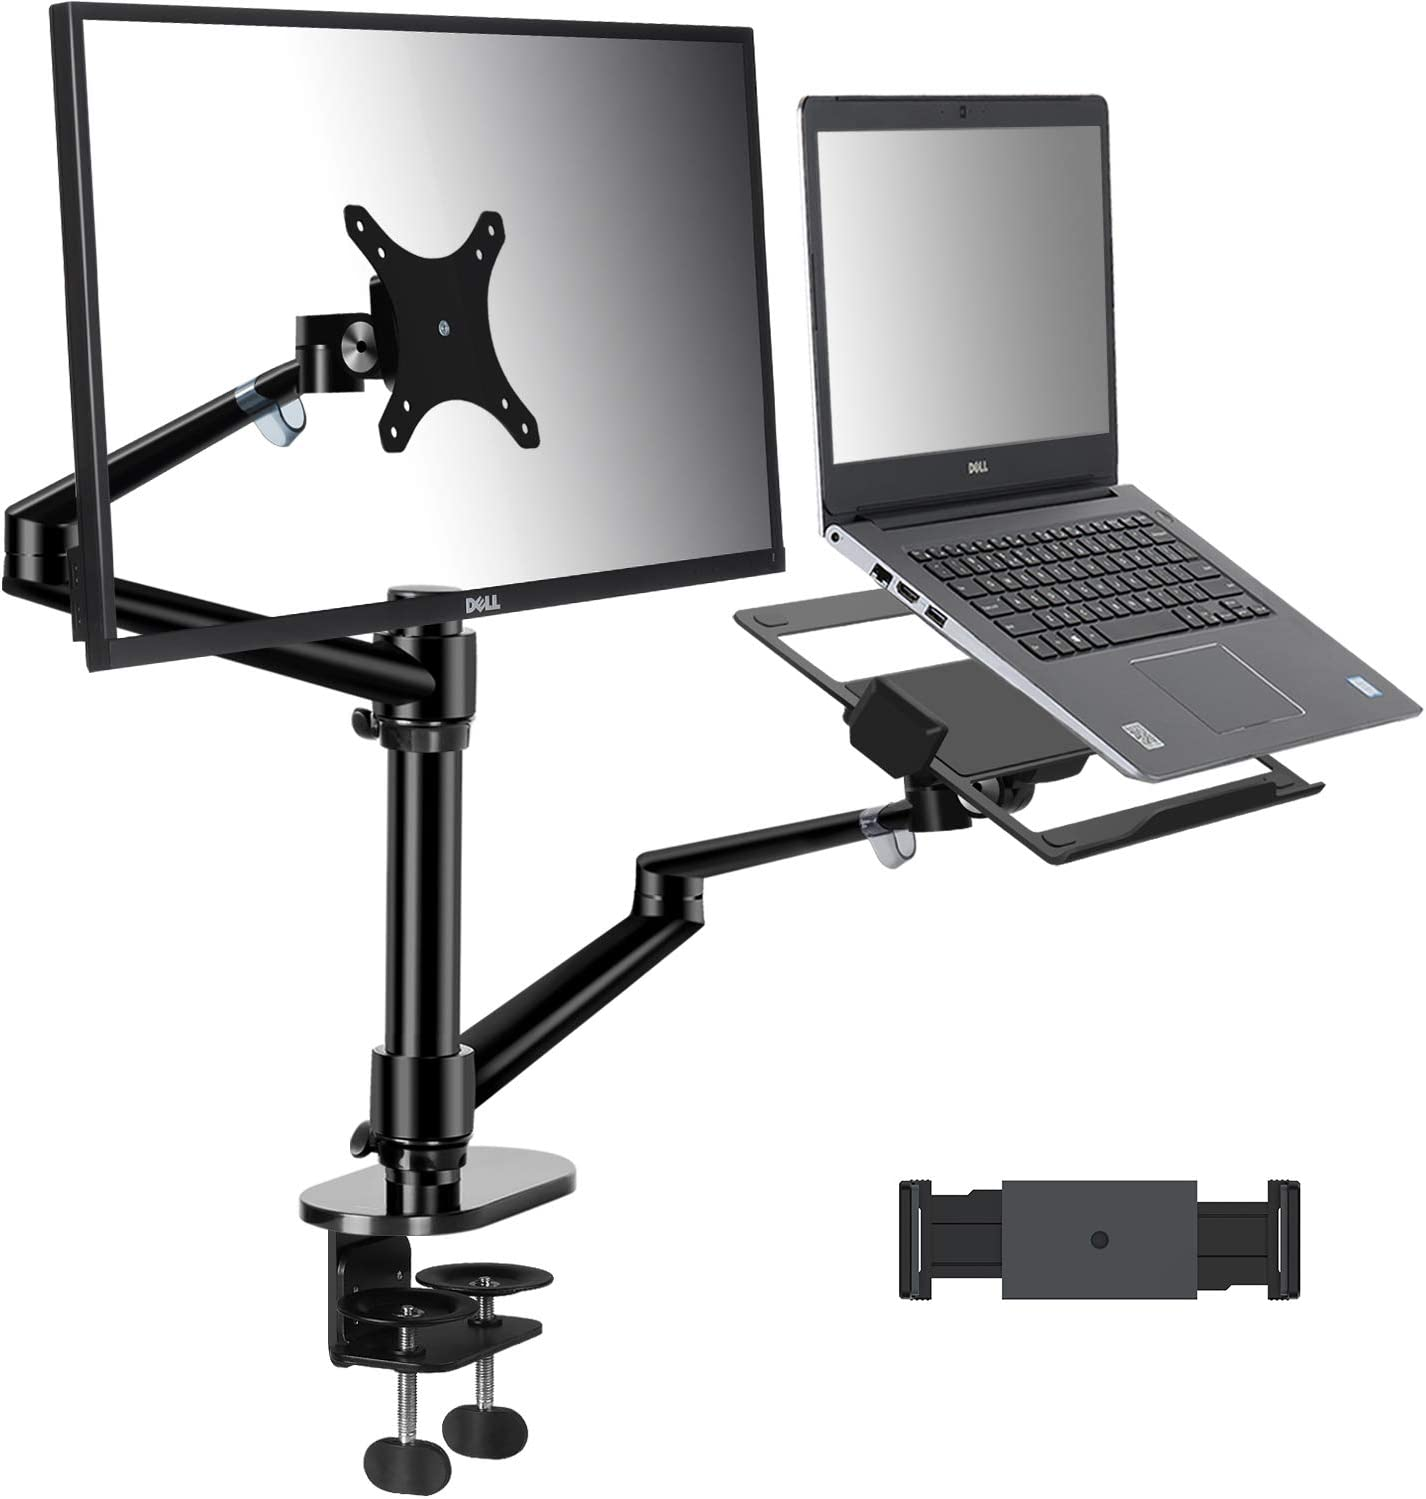 viozon Monitor and Laptop or Tablet Mount, 3-in-1 Adjustable Dual Arm Desk Stands?Monitor Arm for 17-32'' Computer Screens, Tablet Arm for 4-13'' Tablet&Phone, Extra Tray Fits 12-17'' Laptop (OL-3TB)